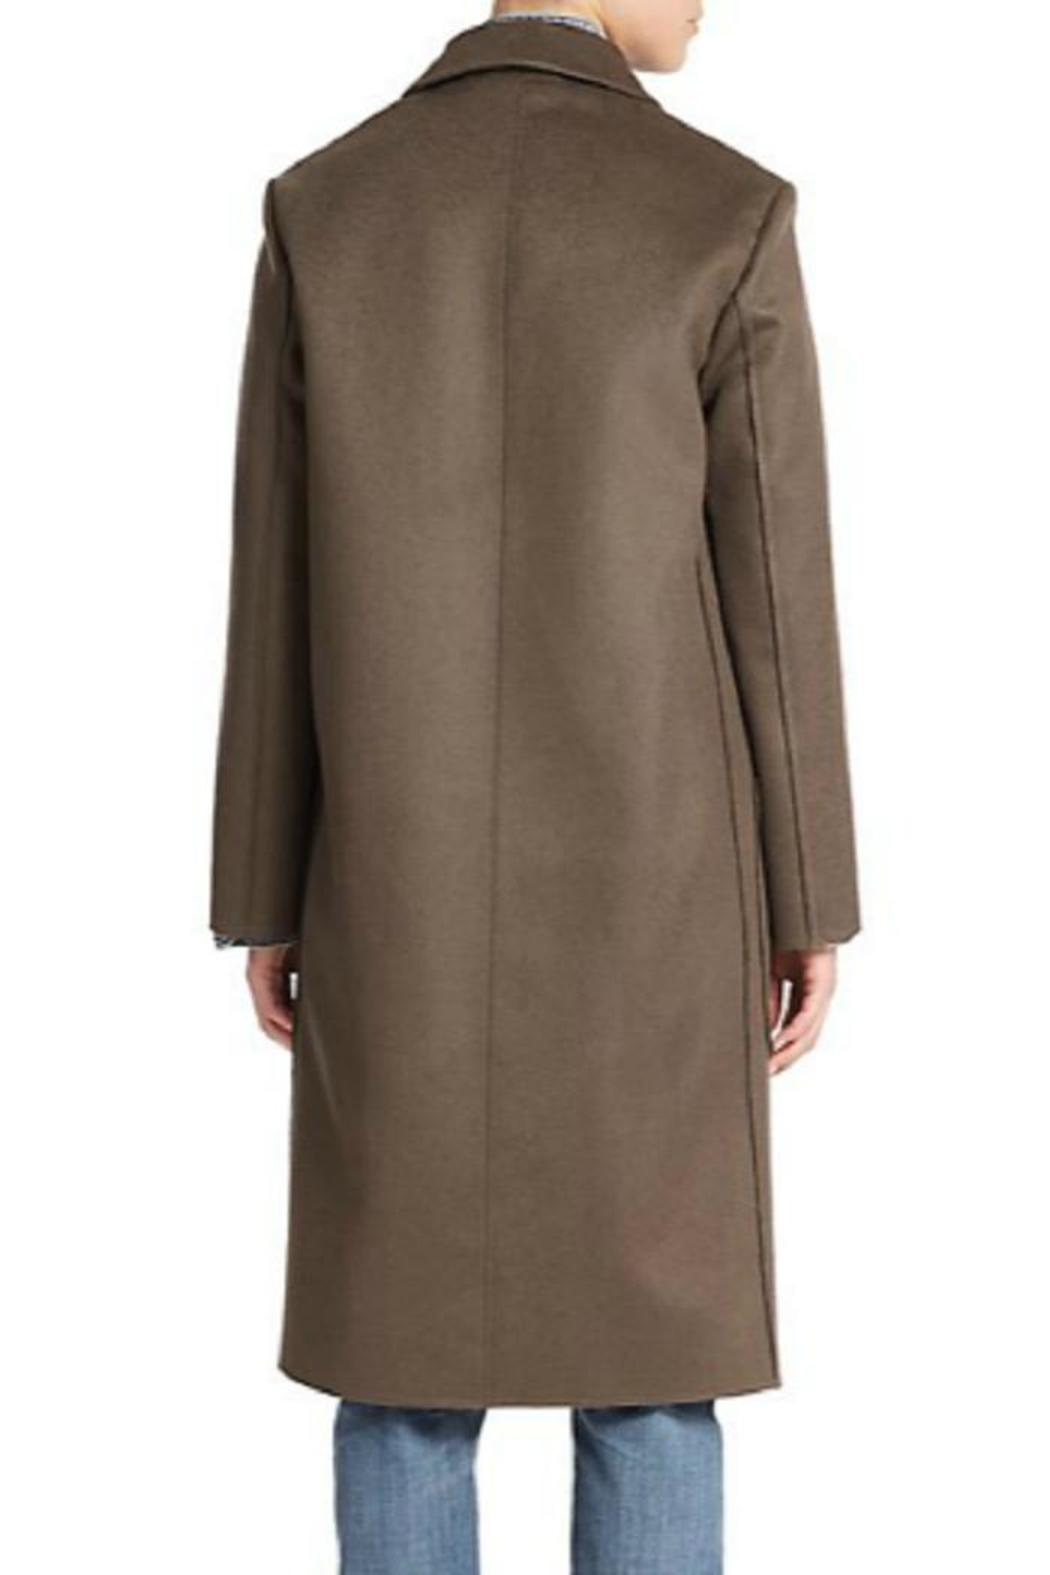 Helmut Lang Wool Cashmere Coat - Side Cropped Image